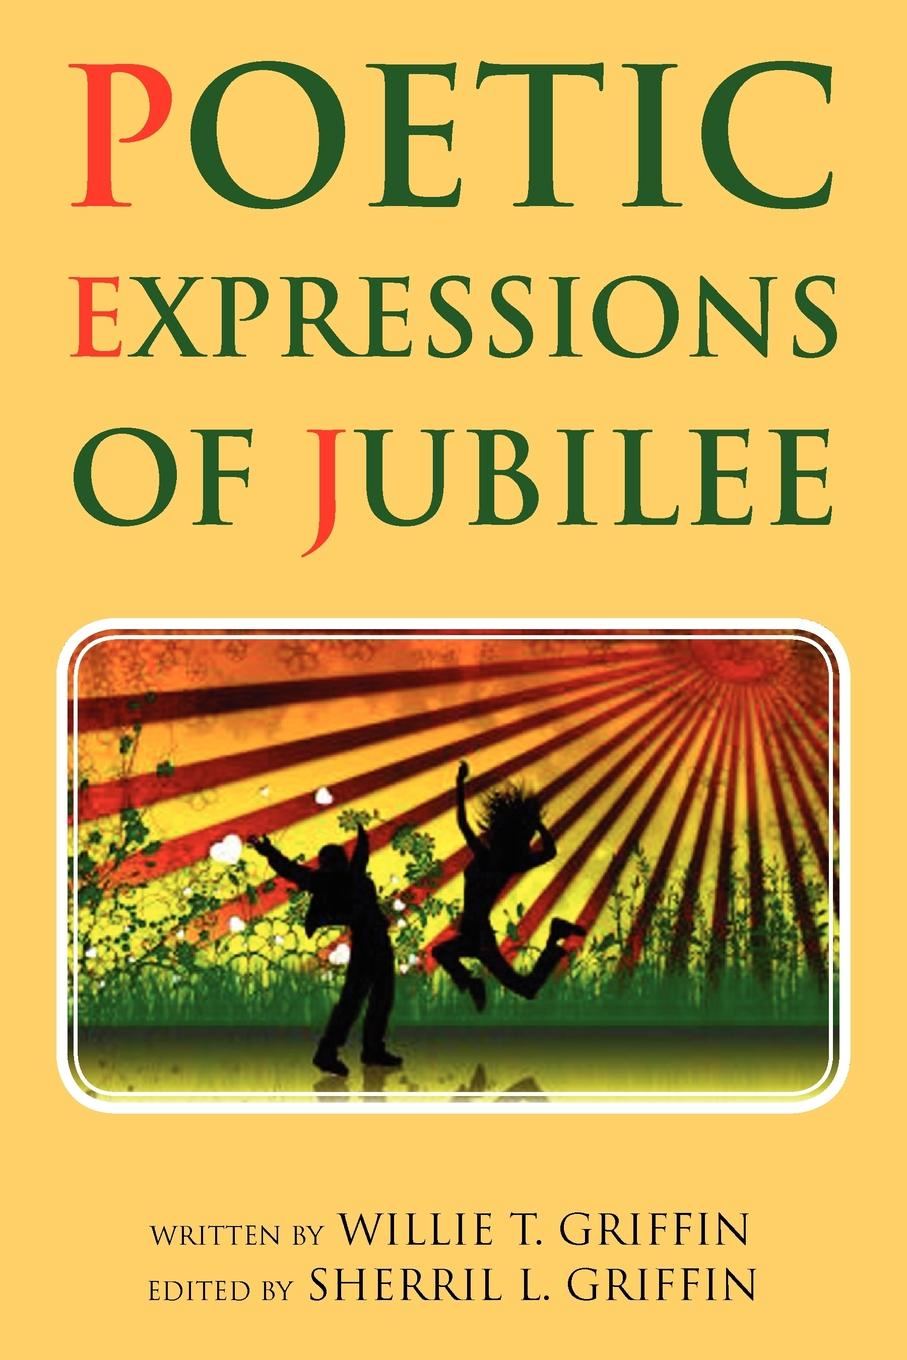 Willie T. Griffin Poetic Expressions of Jubilee jubilee 2019 04 14t19 00